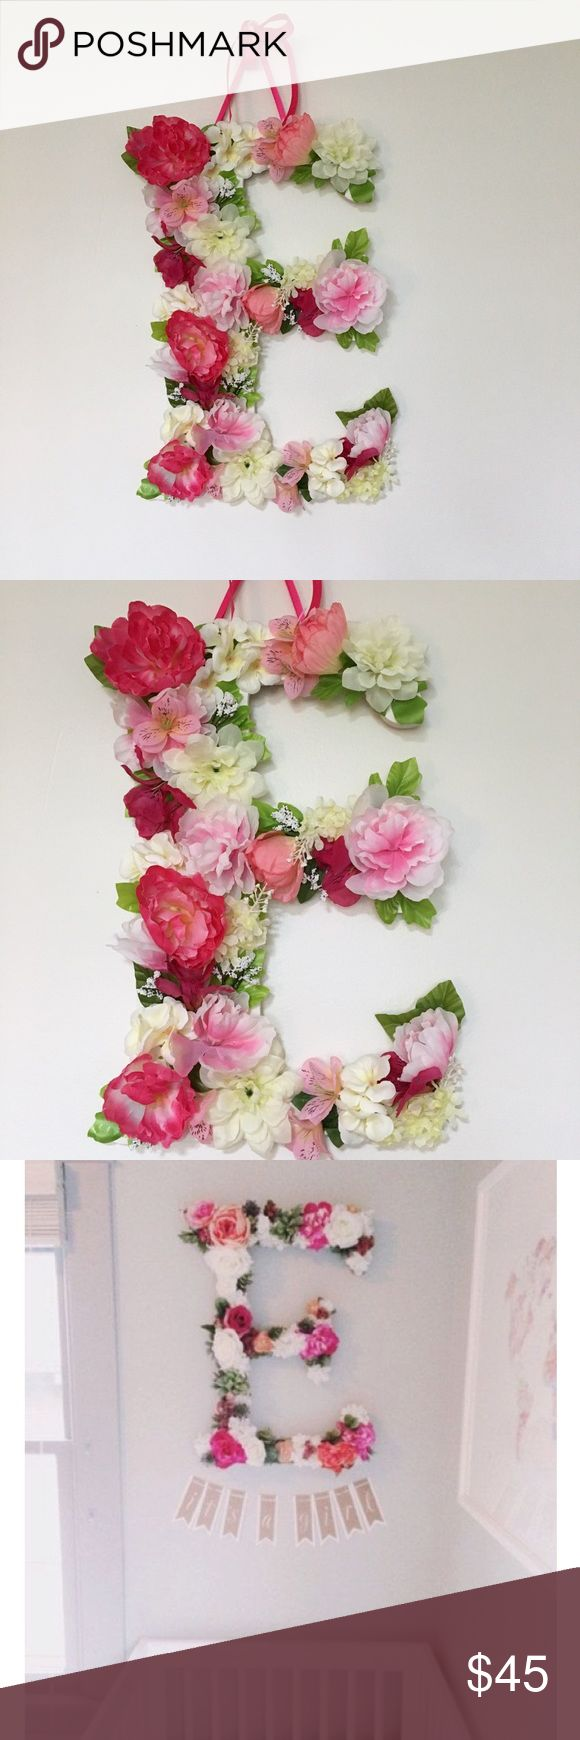 "Handmade floral letter decor. NWT Beautiful handmade 18""tall floral letter is perfect for a bridal shower, wedding decor, baby shower, nursery decor, personalized gift, birthday party, photo shoot prop etc.Letter is made on thick wood, so it is sturdy, durable piece for you to keep forever. You can purchase this letter and message me what letter or number you need. I will make it for you within 3 days and will ship it to you! You can also choose your color theme. P.S.Last 2 photo is not mine, taken from Pinterest as a example. Handmade by me! Accessories"